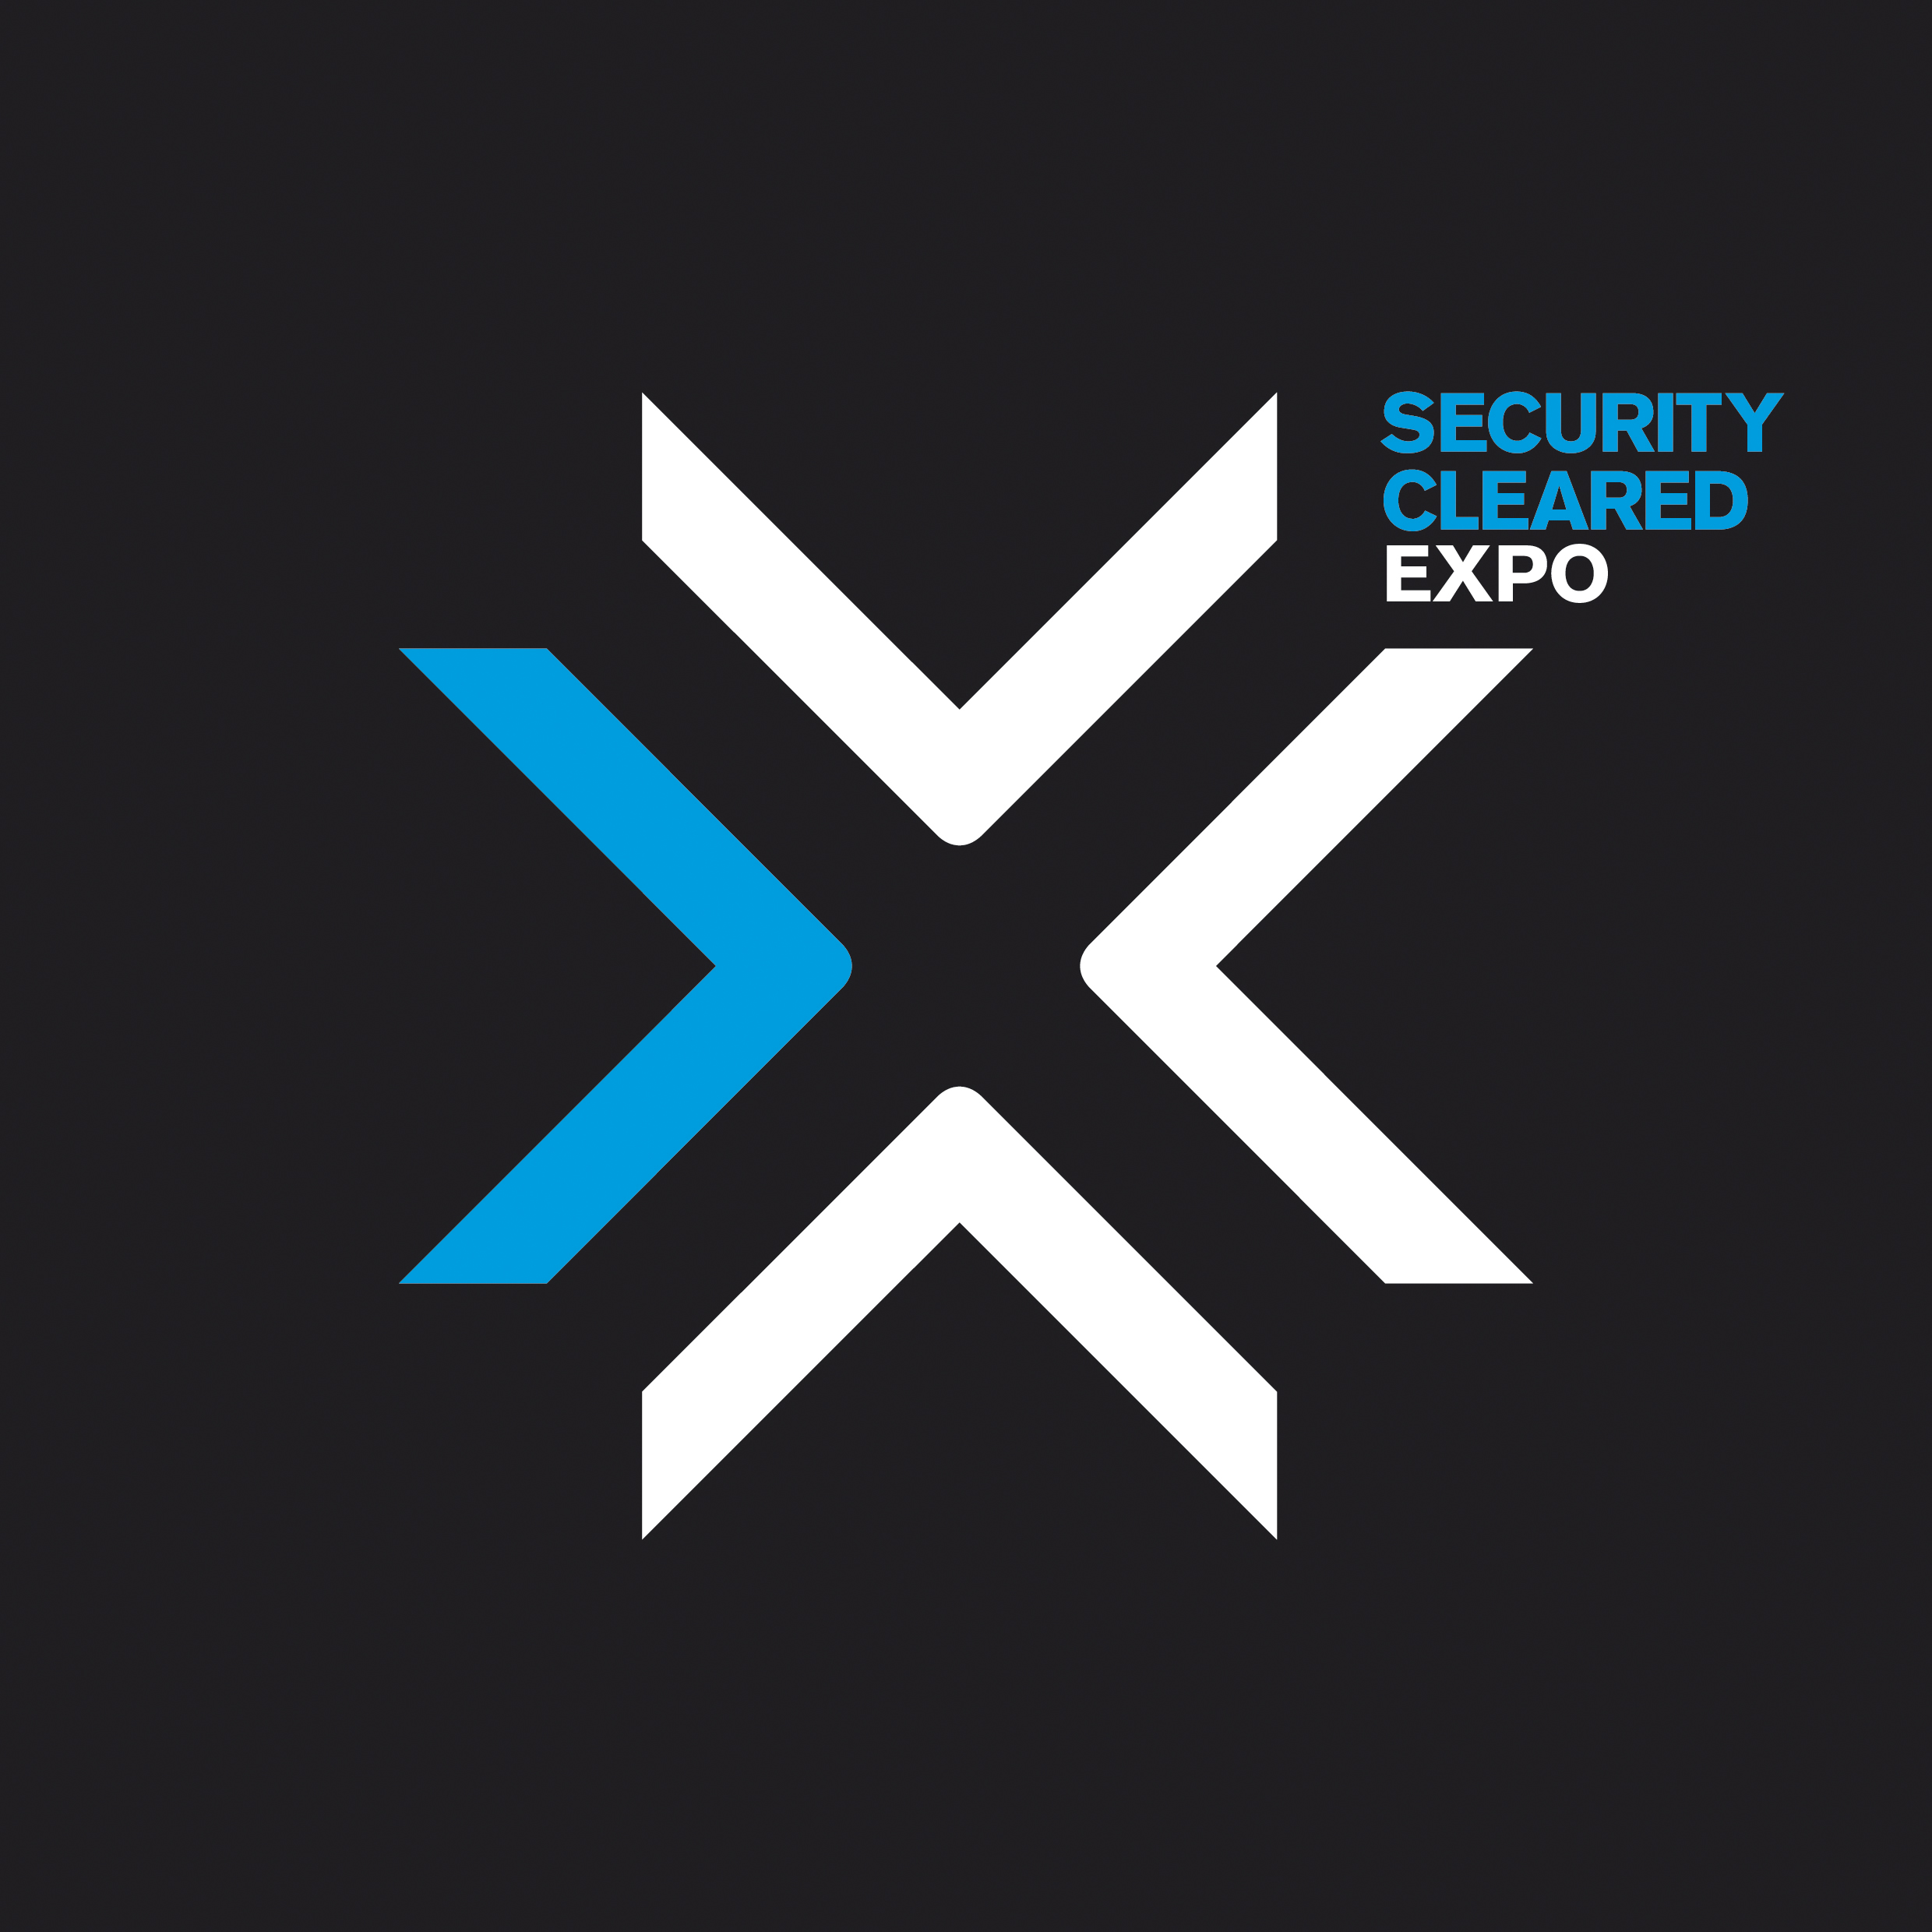 Security Cleared Expo